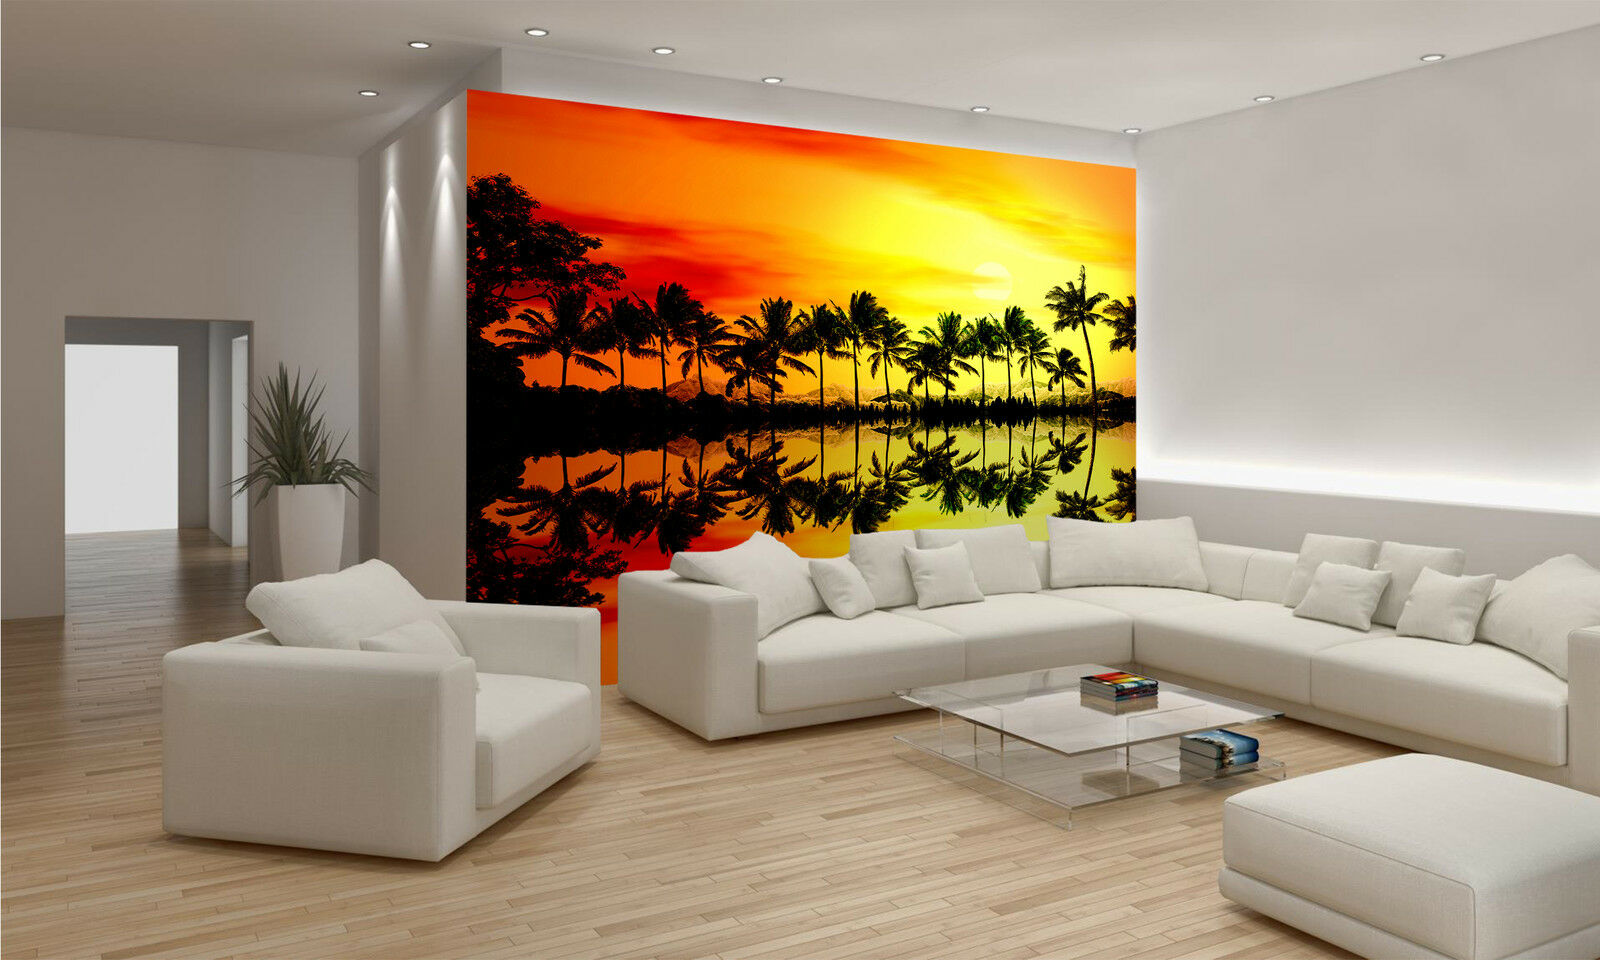 Tropical Palm Trees Wall Mural Photo Wallpaper GIANT WALL DECAL PAPER POSTER